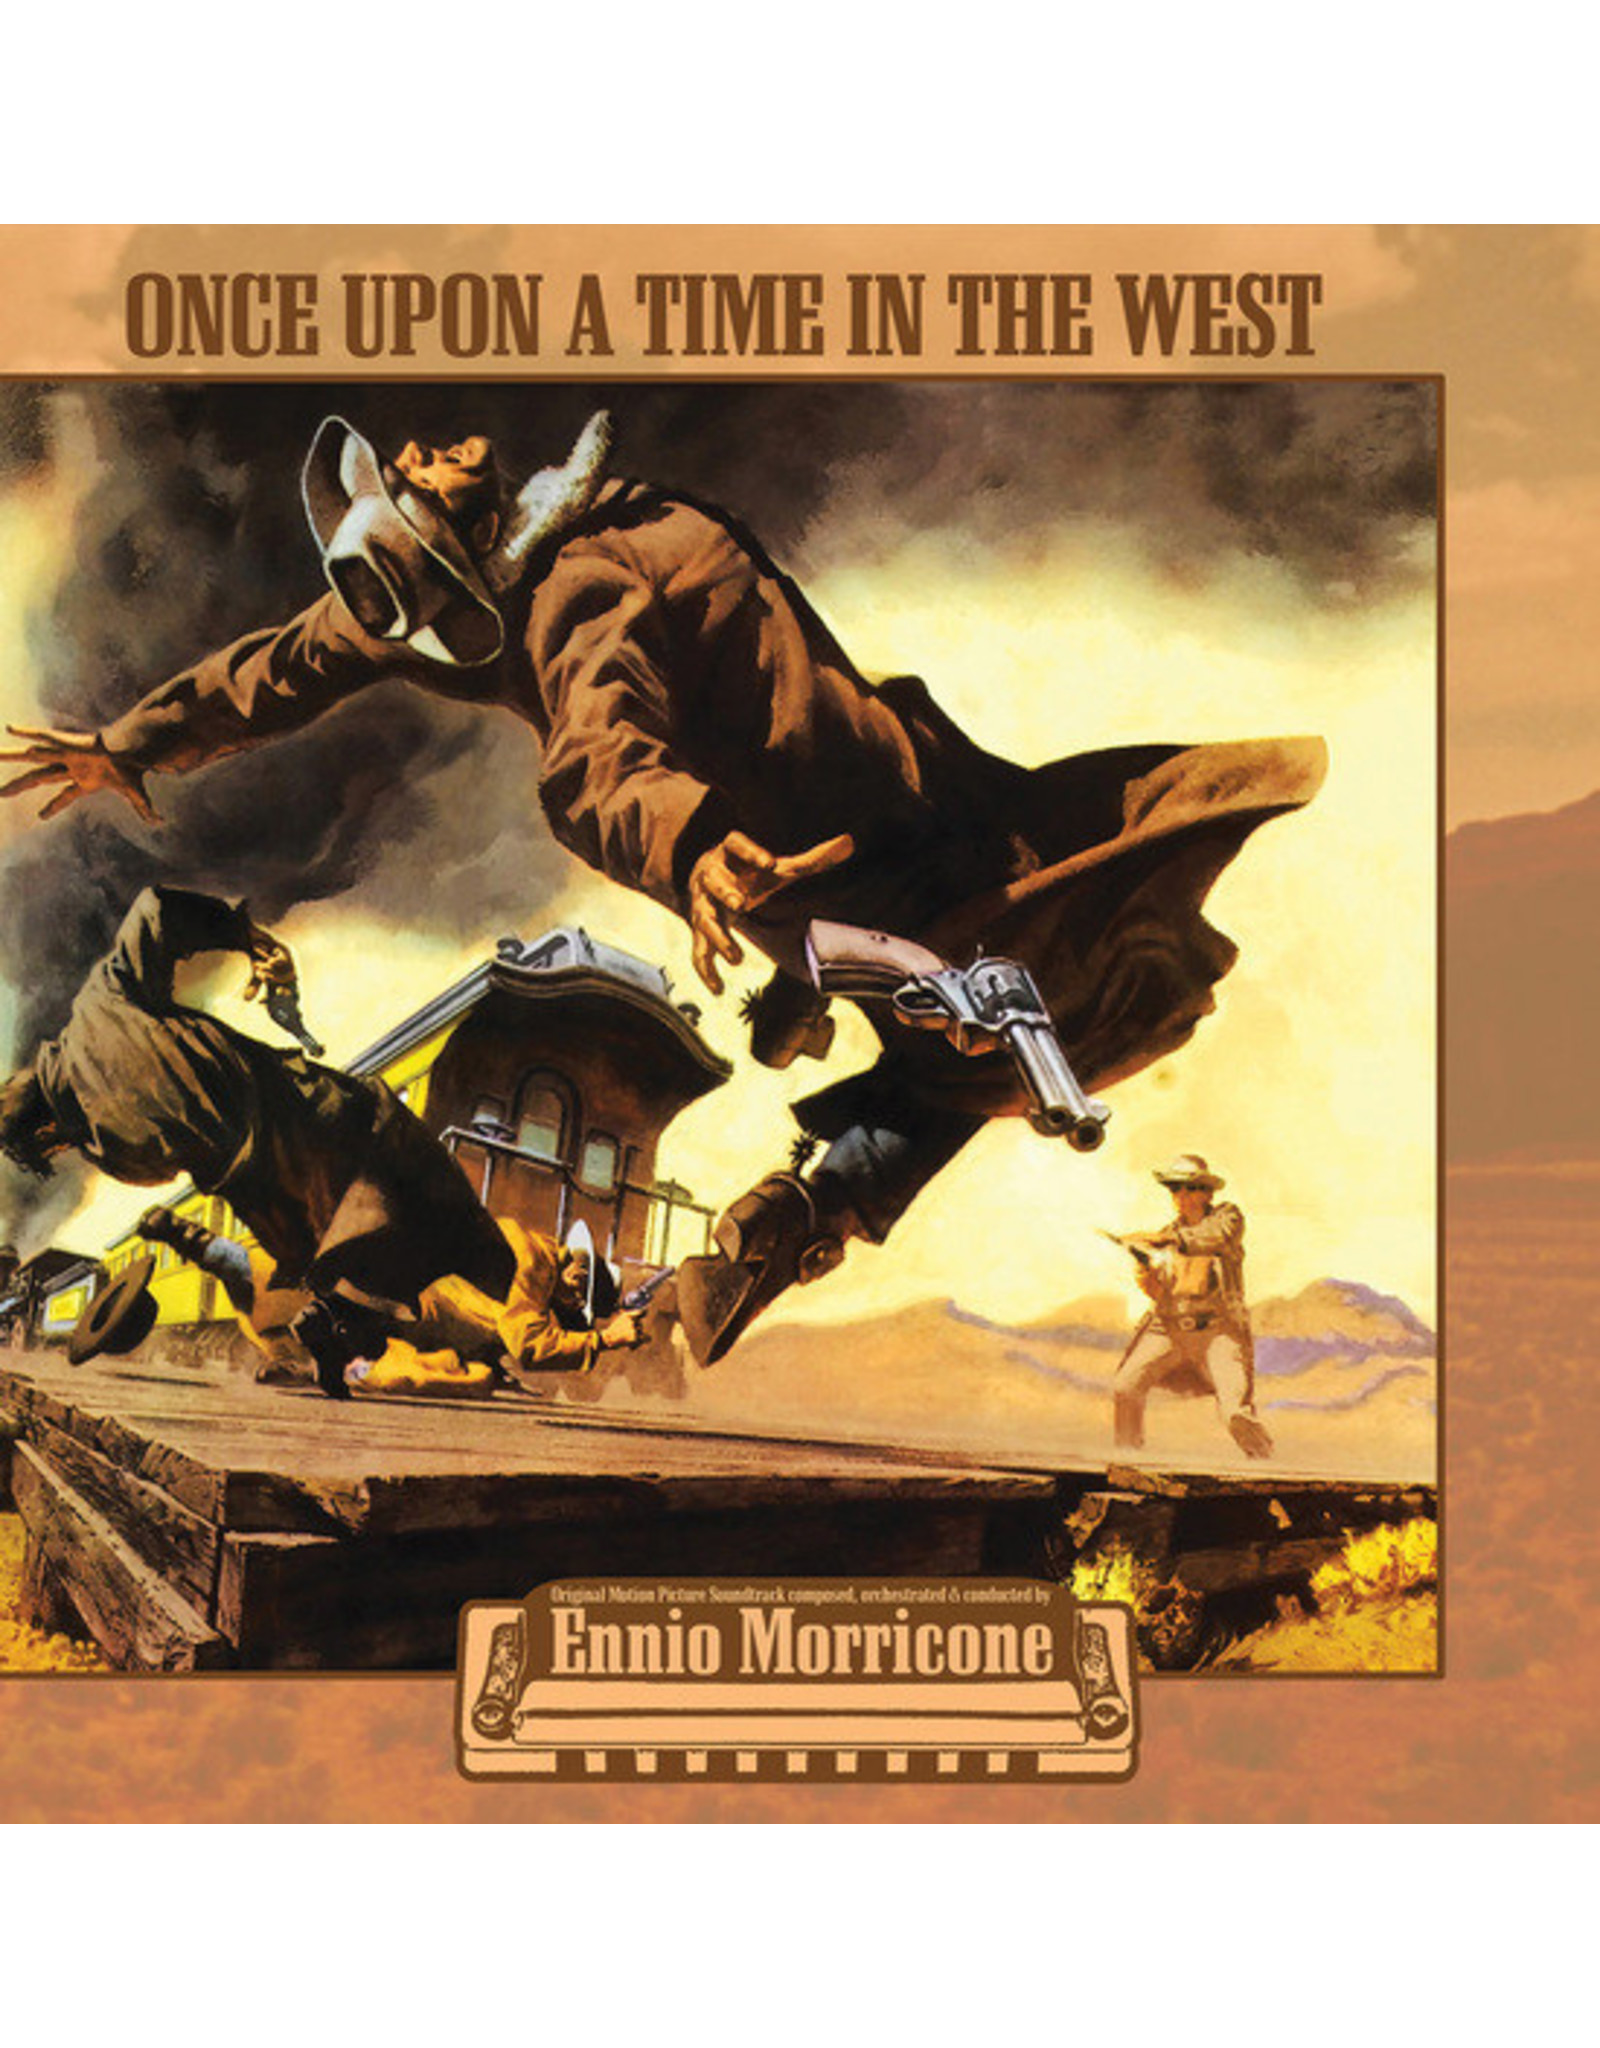 Cinevox Morricone, Ennio: Once Upon a Time in the West LP